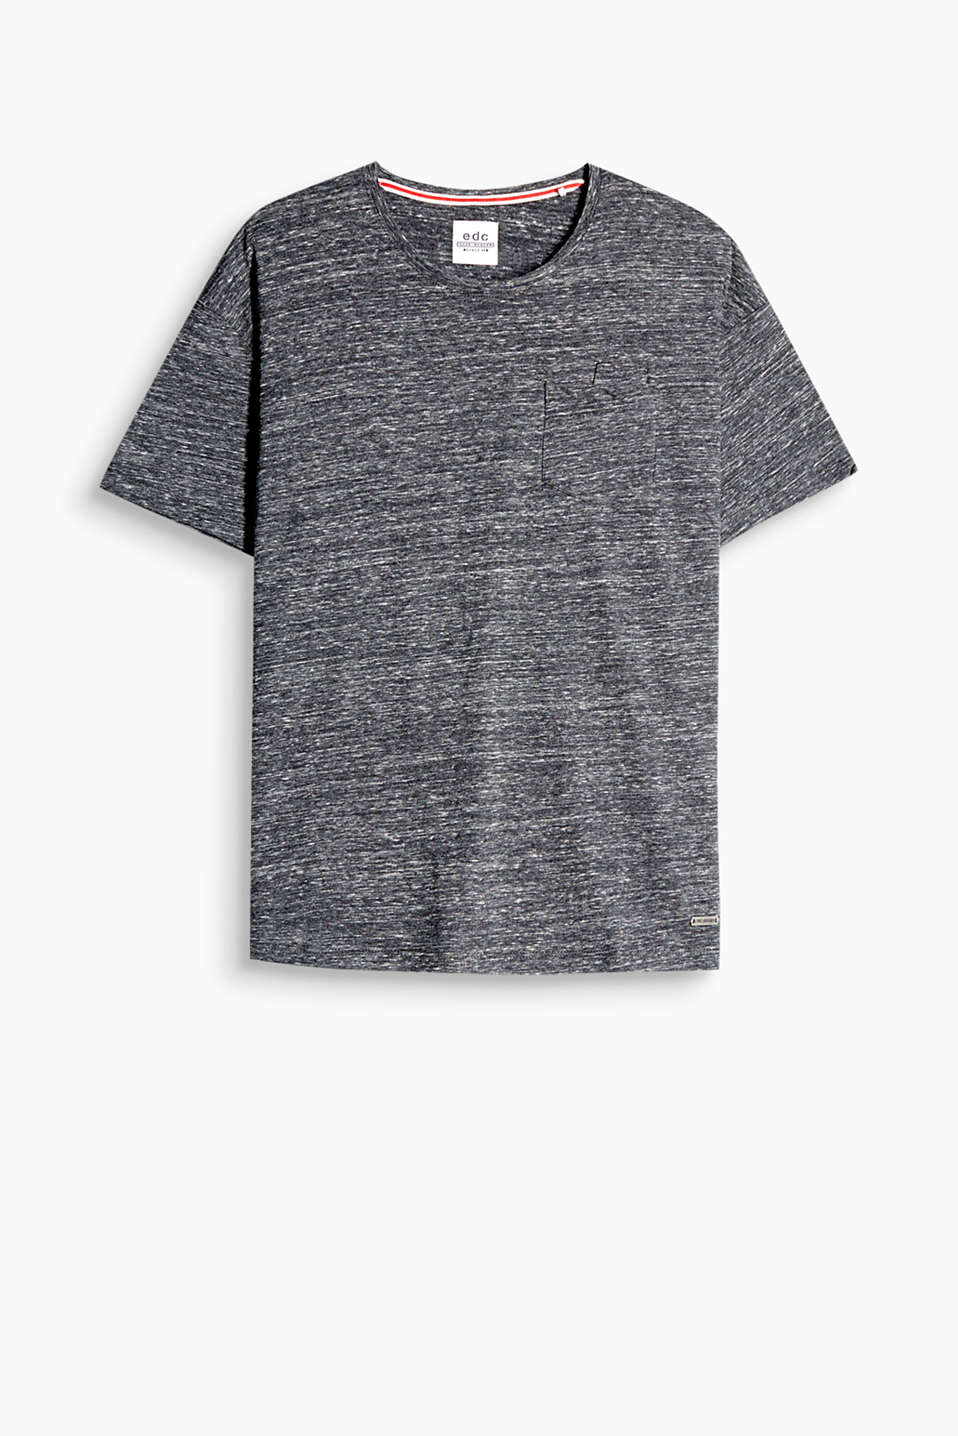 Boxy T-shirt in pure cotton jersey With a patch breast pocket and a round neckline